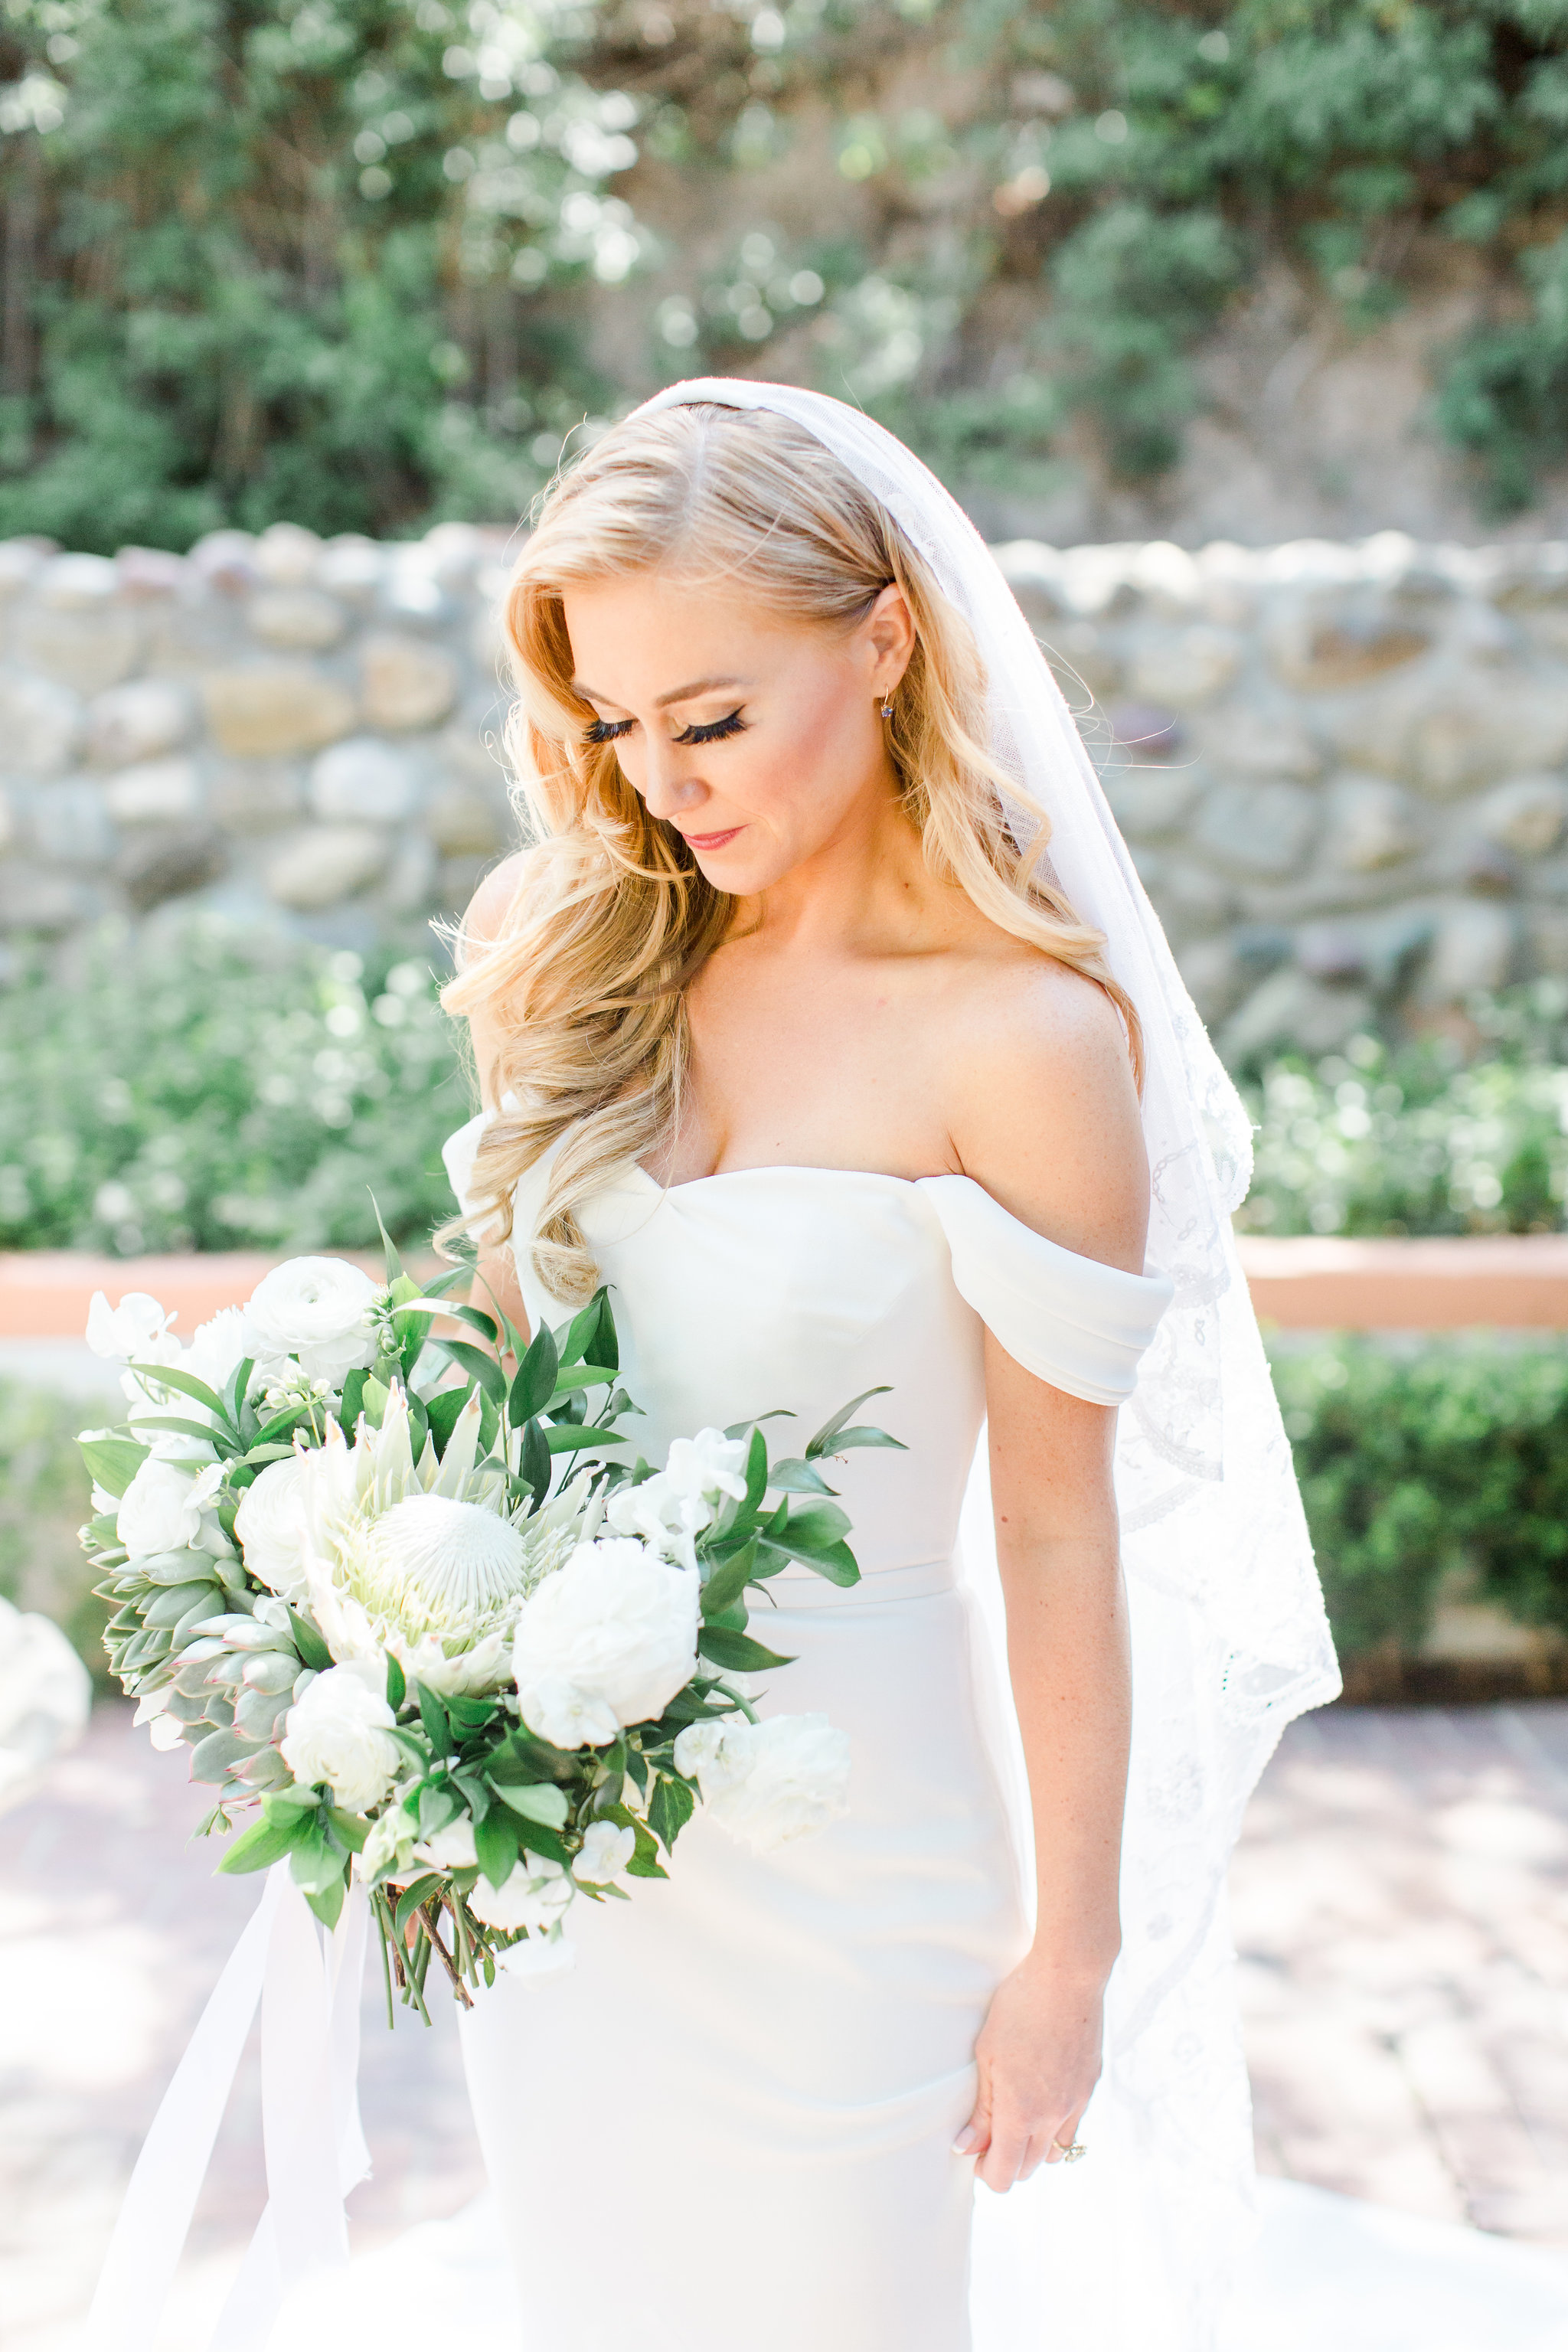 06.23.2018  Featured on Real Wedding's Magazine from California Wedding Day, December 2018  Venue: Rancho Las Lomas  Photographer: Angelica Marie